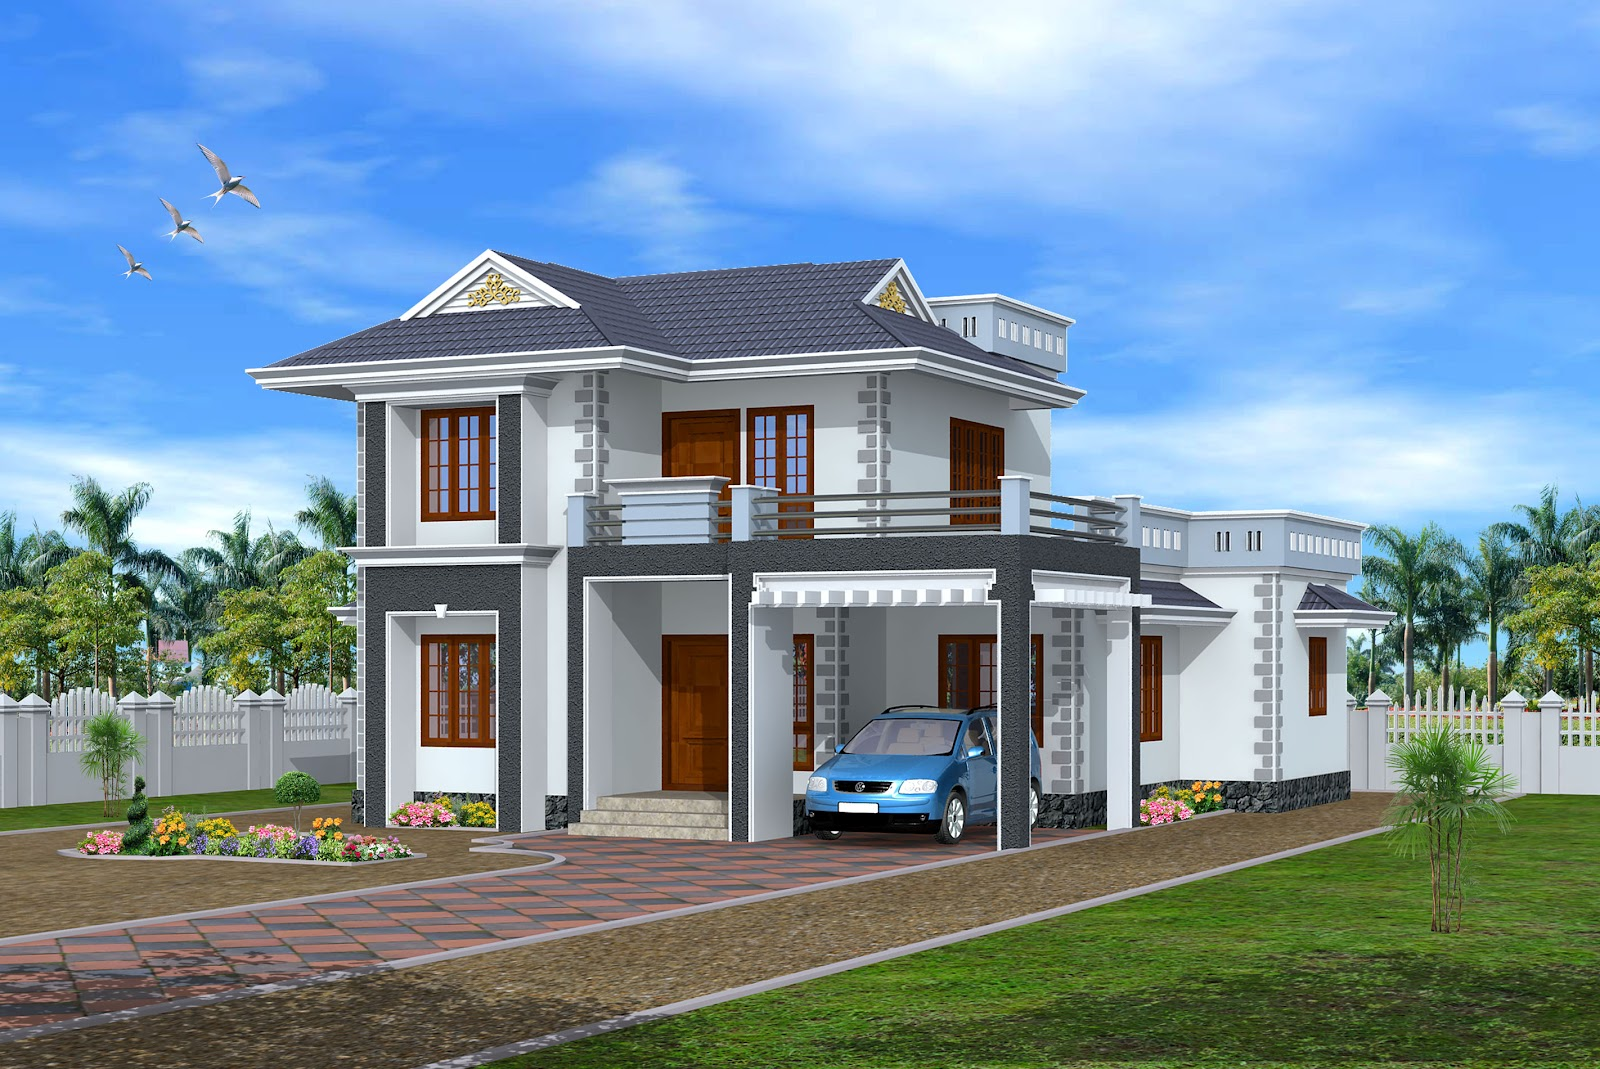 New home designs latest modern homes exterior designs views for Design house